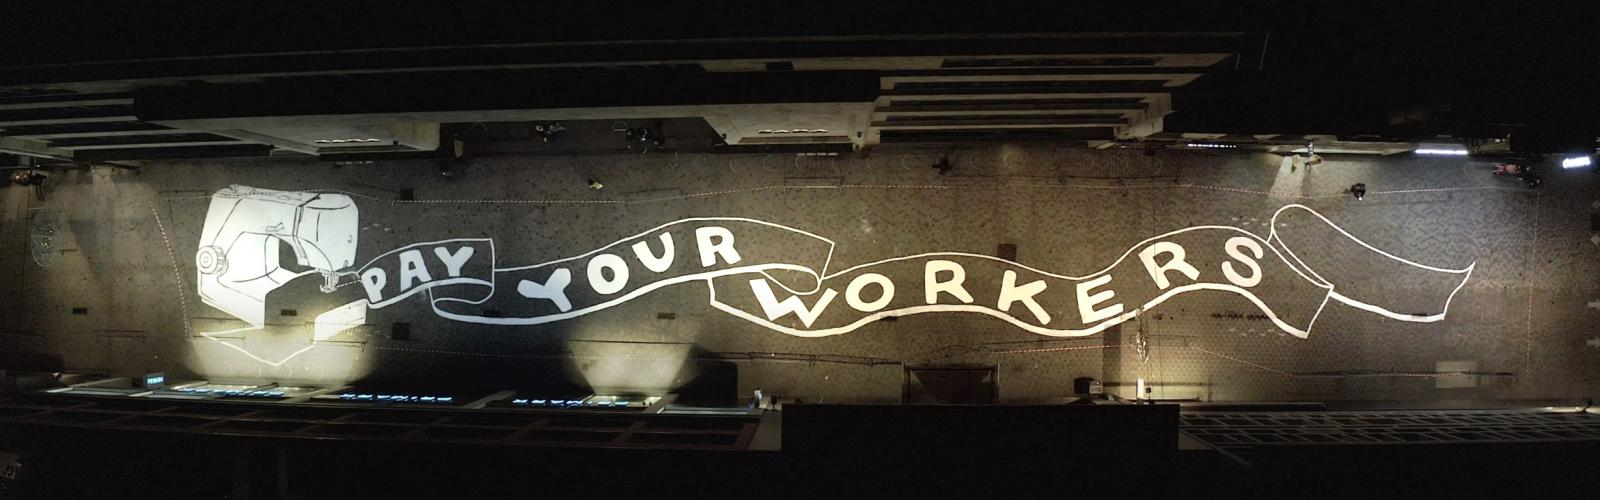 fresco 'Pay your workers'